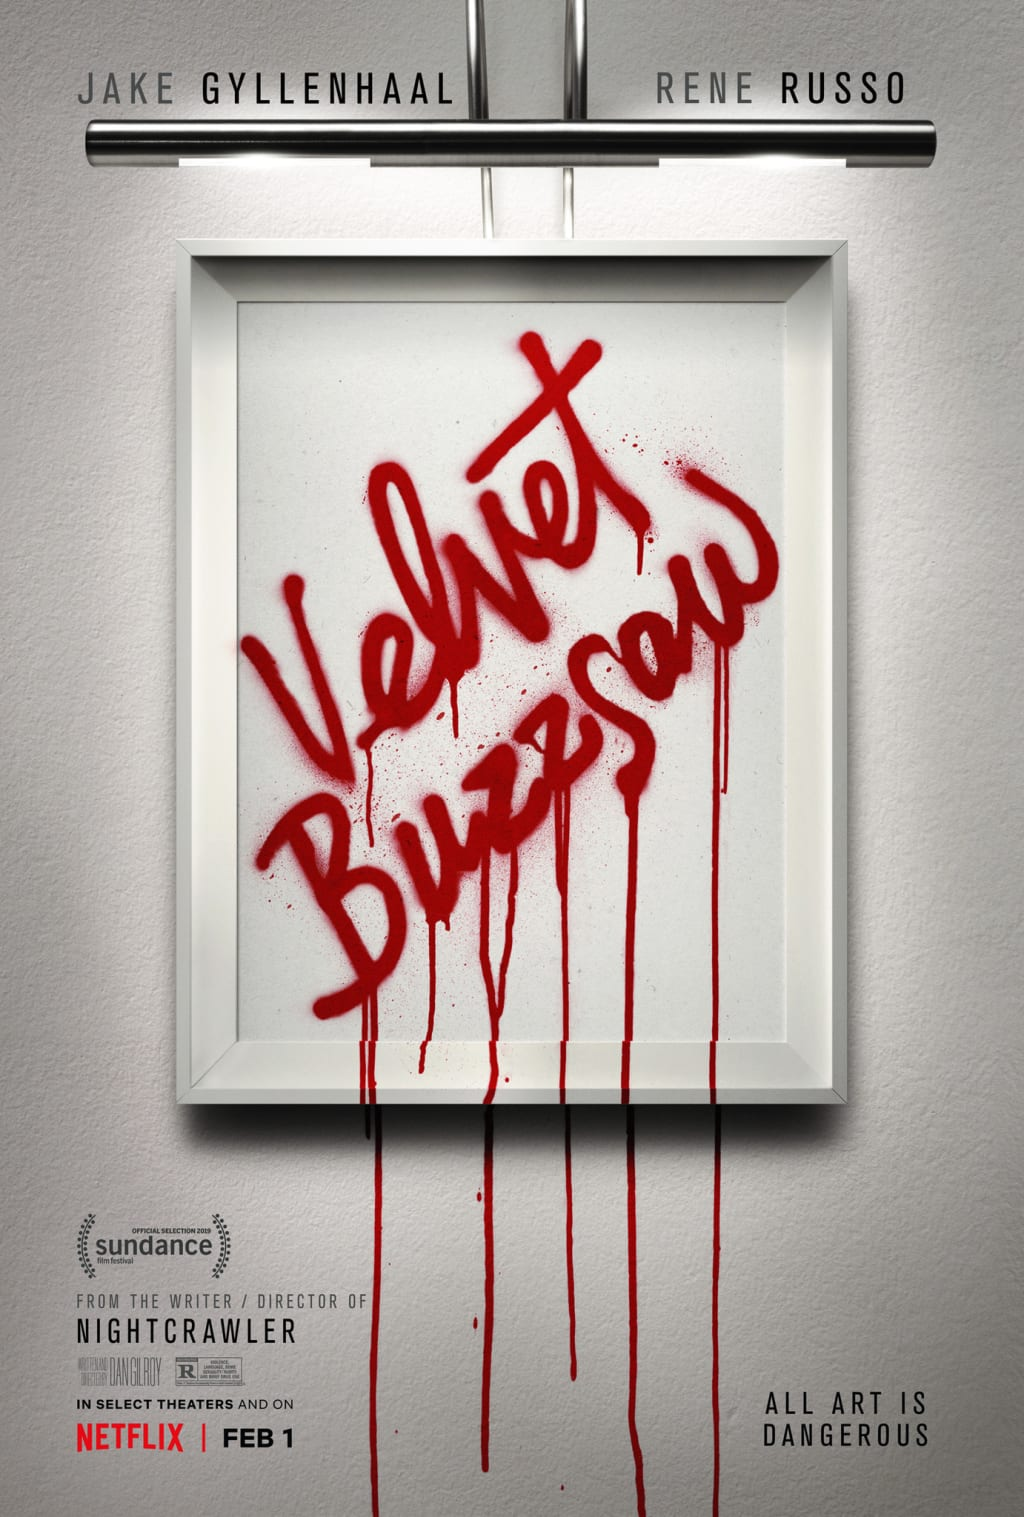 Thoughts After Watching 'Velvet Buzzsaw'